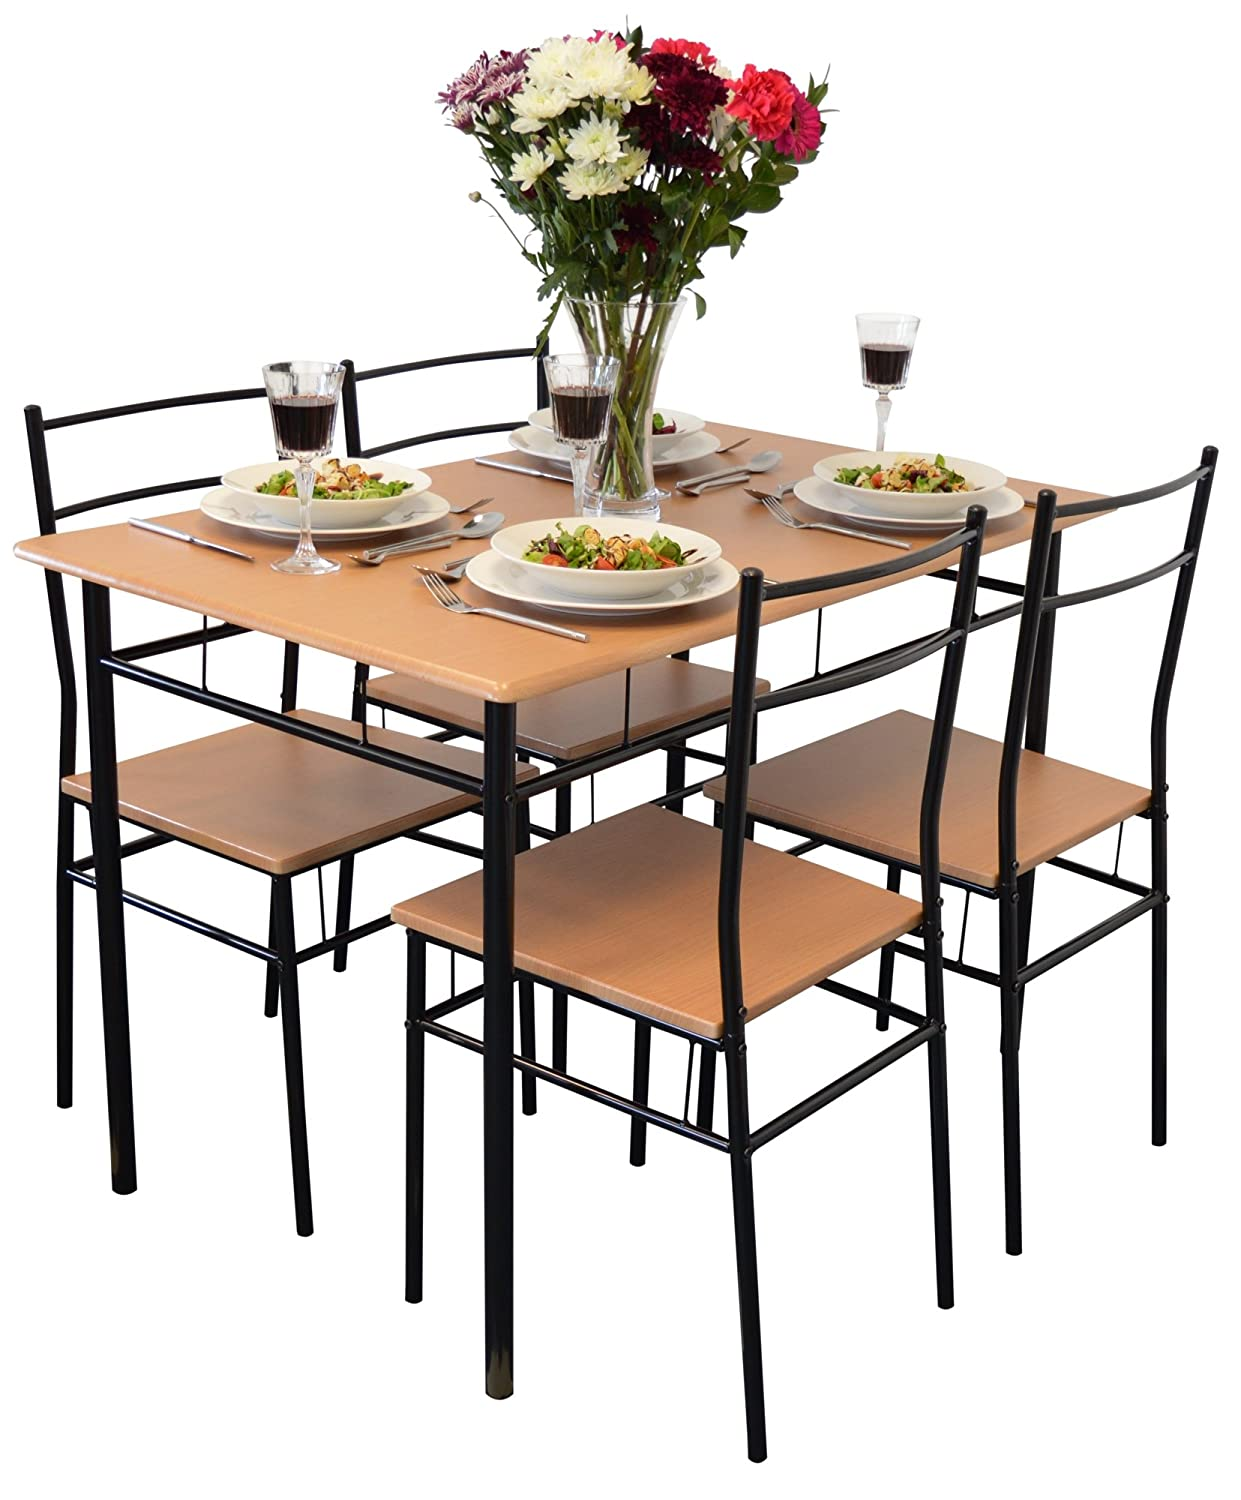 en bolonya istikbal table takimi sandalye set and furniture masa chair chairs kitchen dikdortgen rectangle